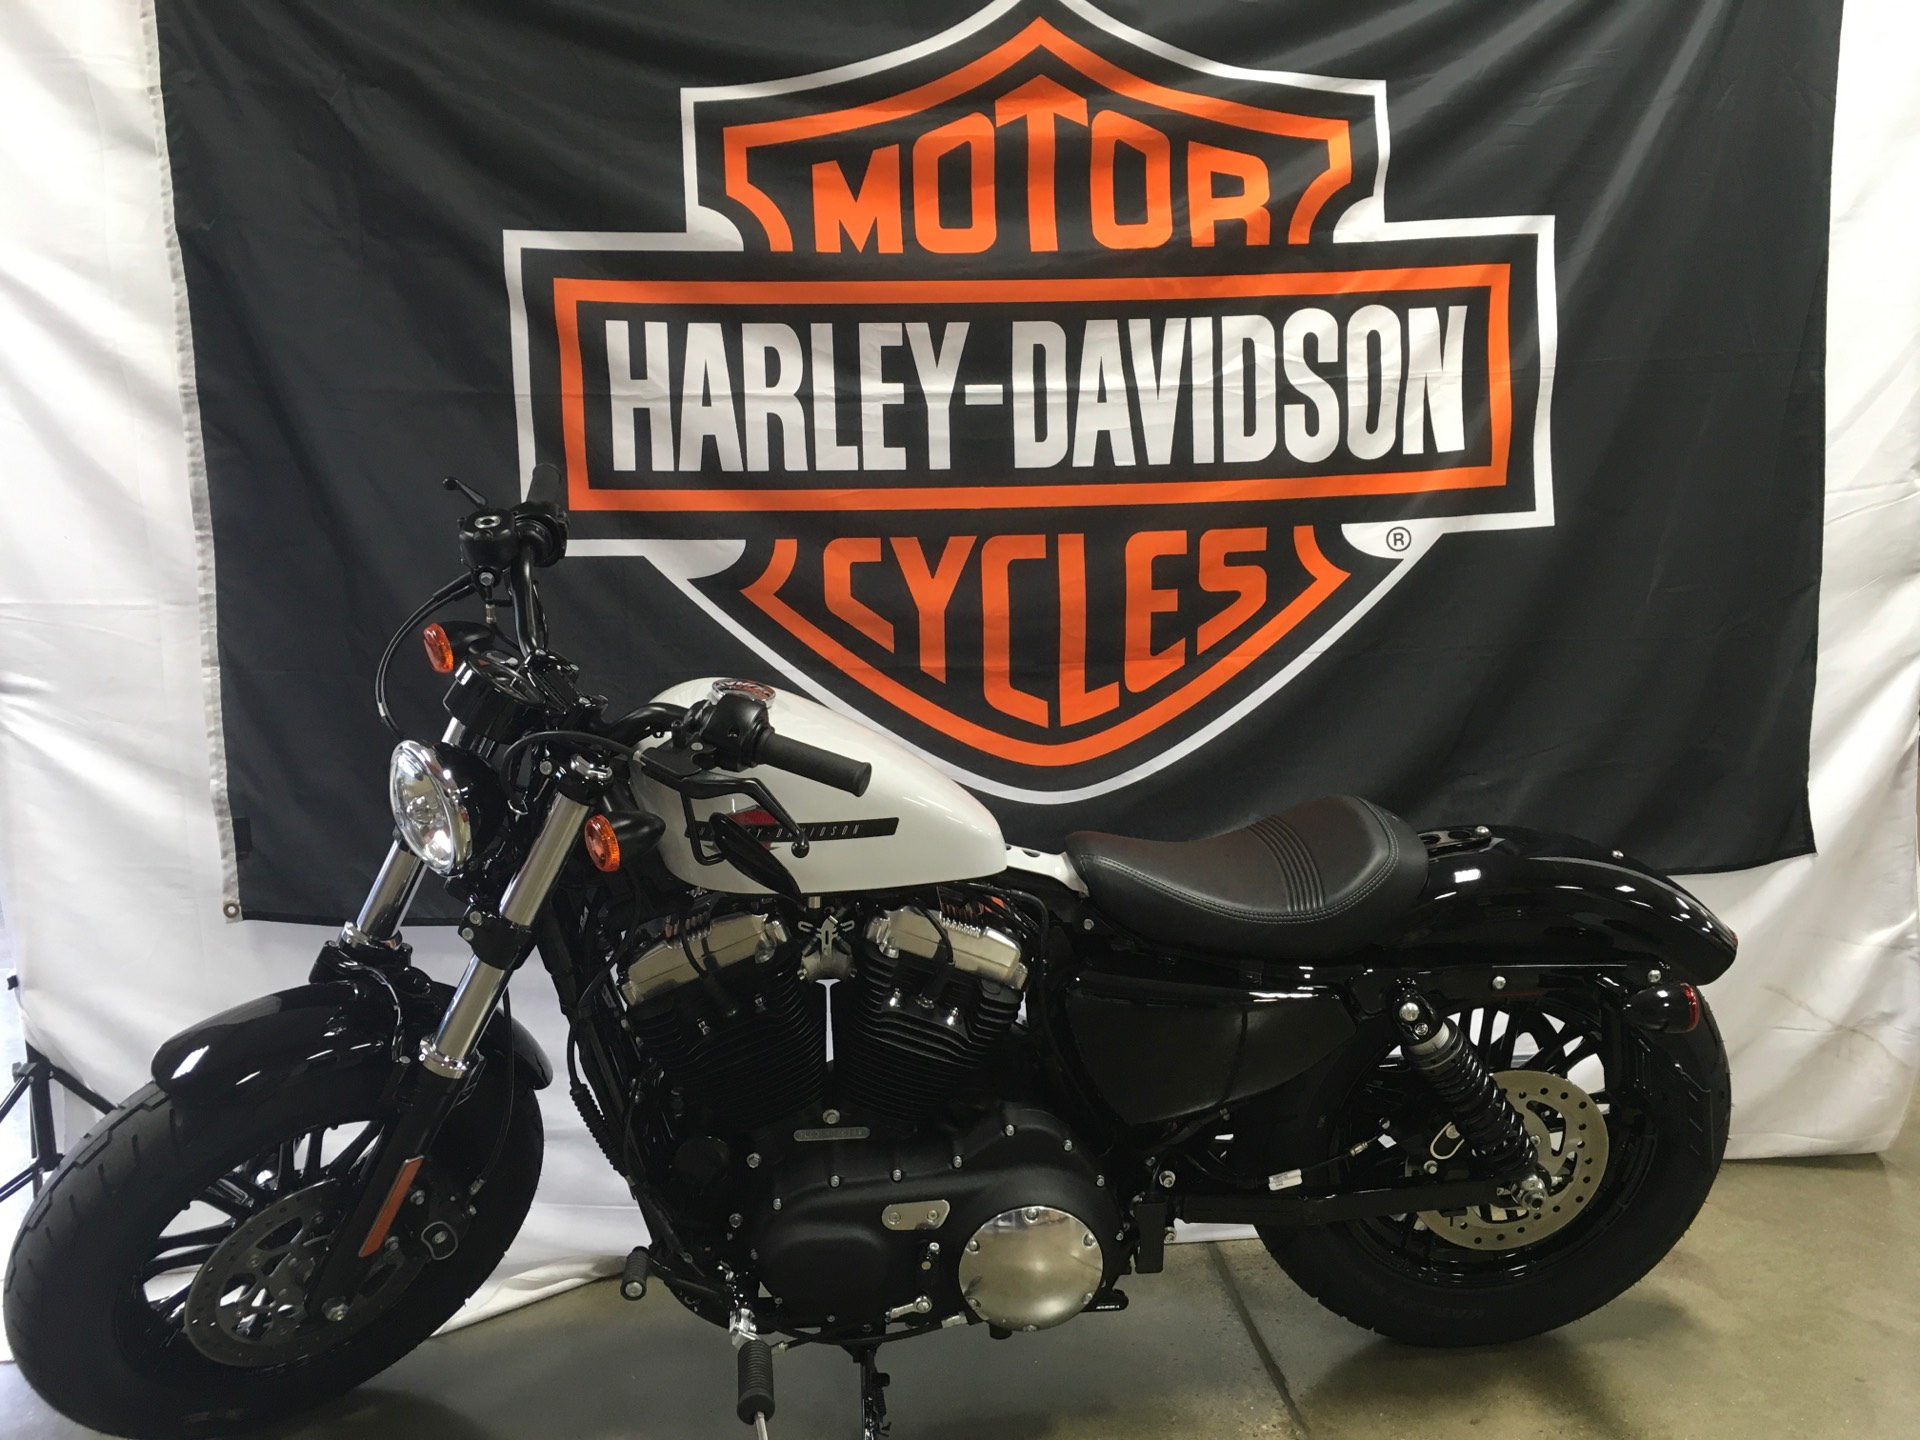 2020 Harley-Davidson XL1200X in Belmont, Ohio - Photo 2